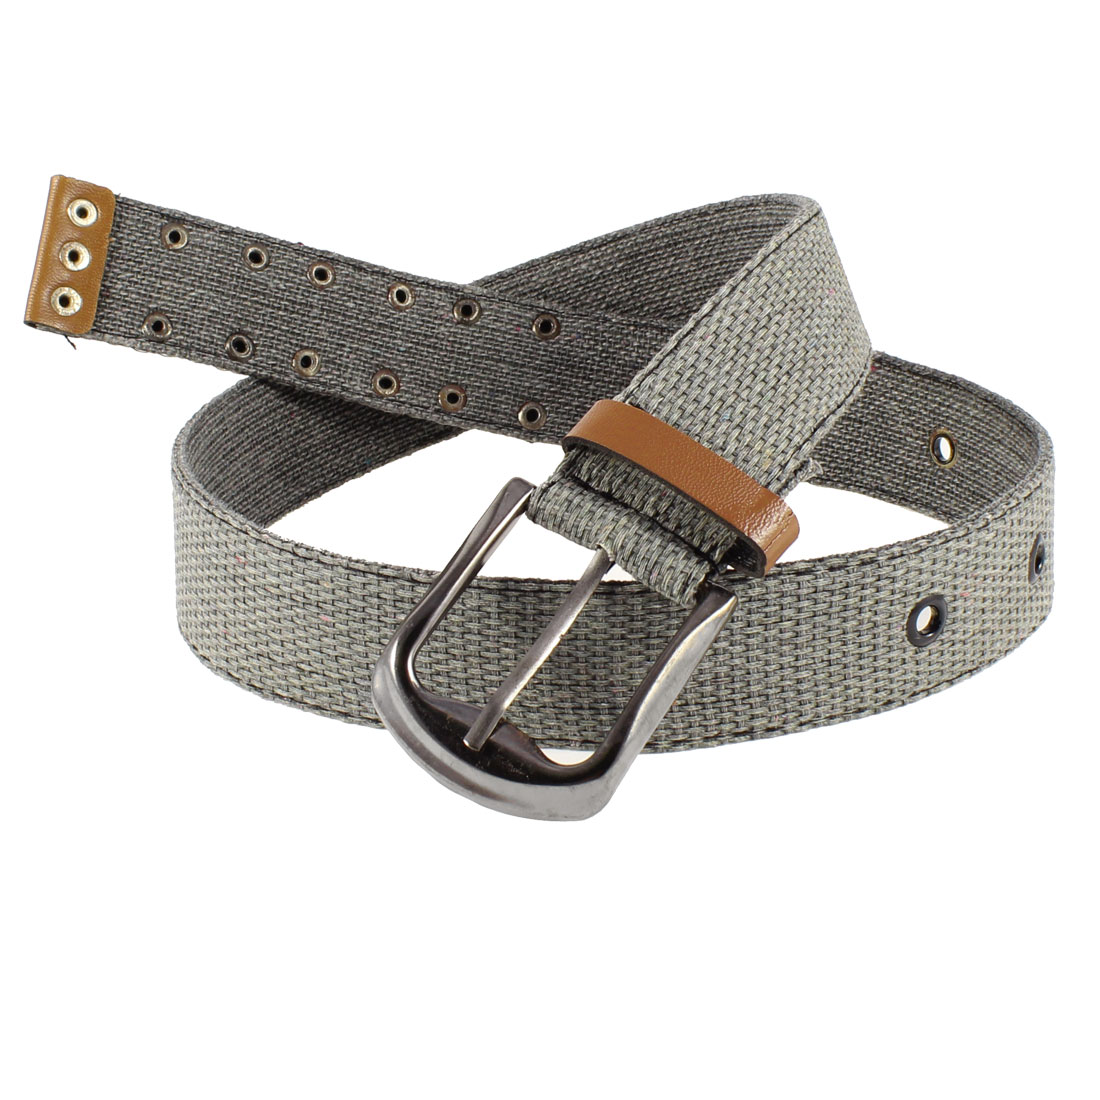 Unisex Textured Canvas Single Pin Buckle 4cm Width Jeans Belt Waist Band Dark Gray